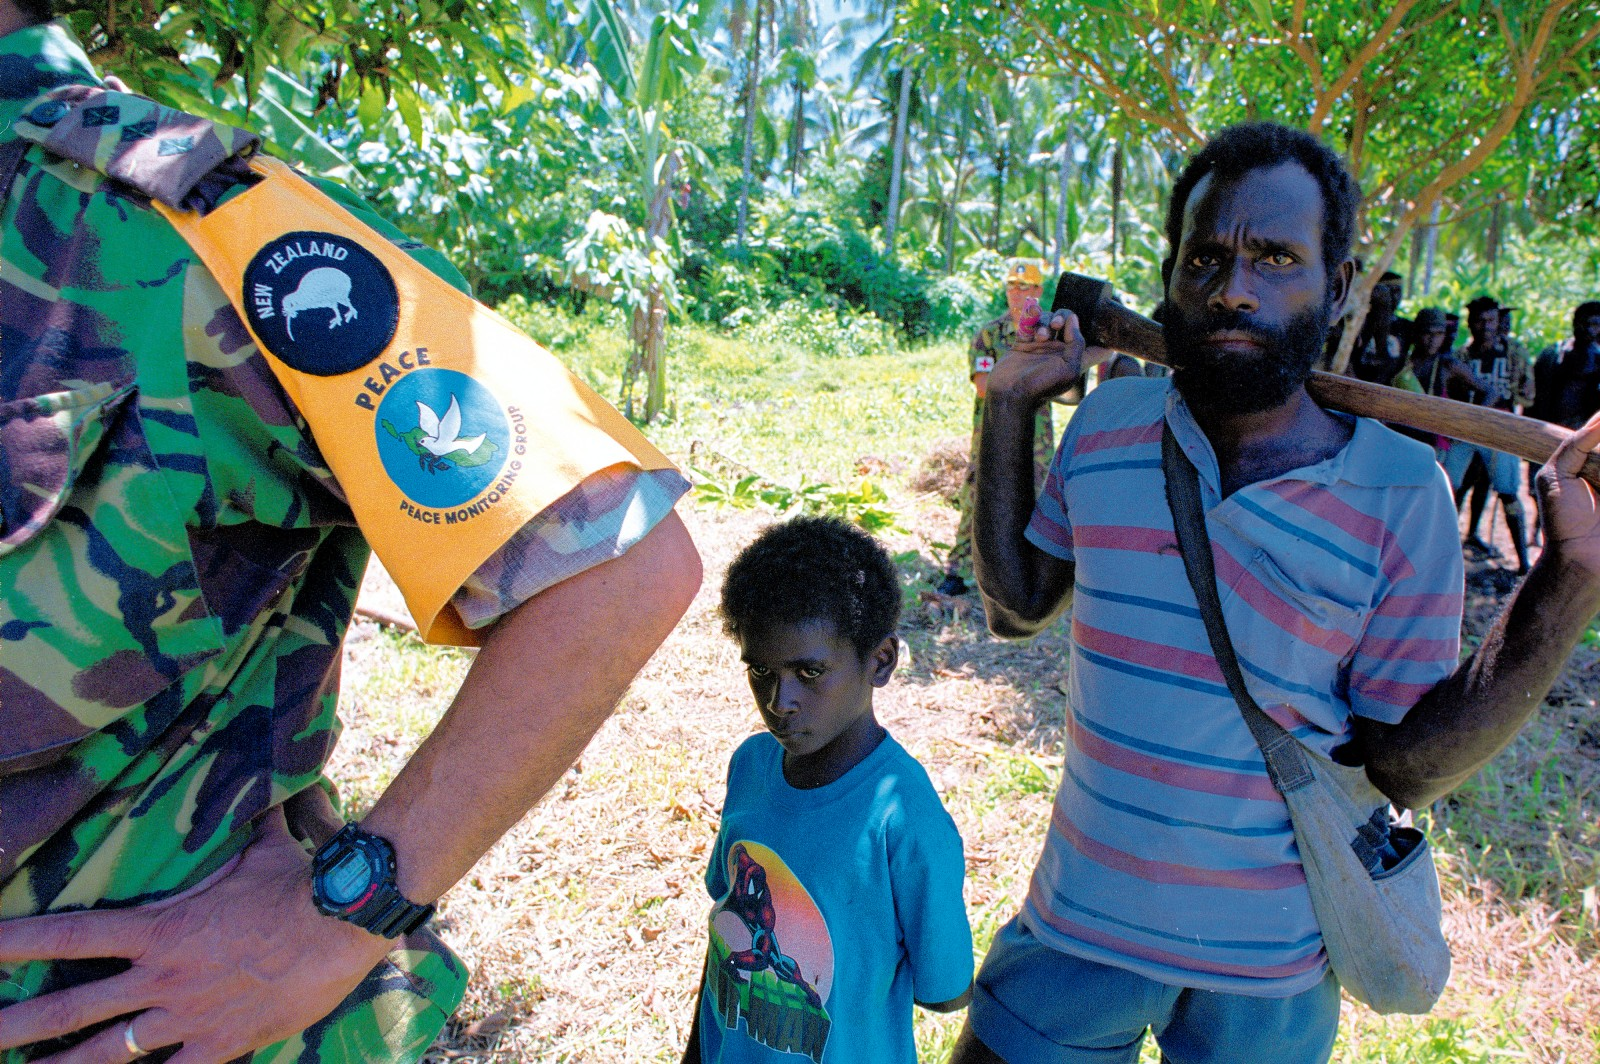 New Zealand diplomacy has been instrumental in bringing political resolution to the troubles on Bougainville, but it is Kiwi soldiers on the ground who have helped restore local confidence by keeping the promise of lasting peace.